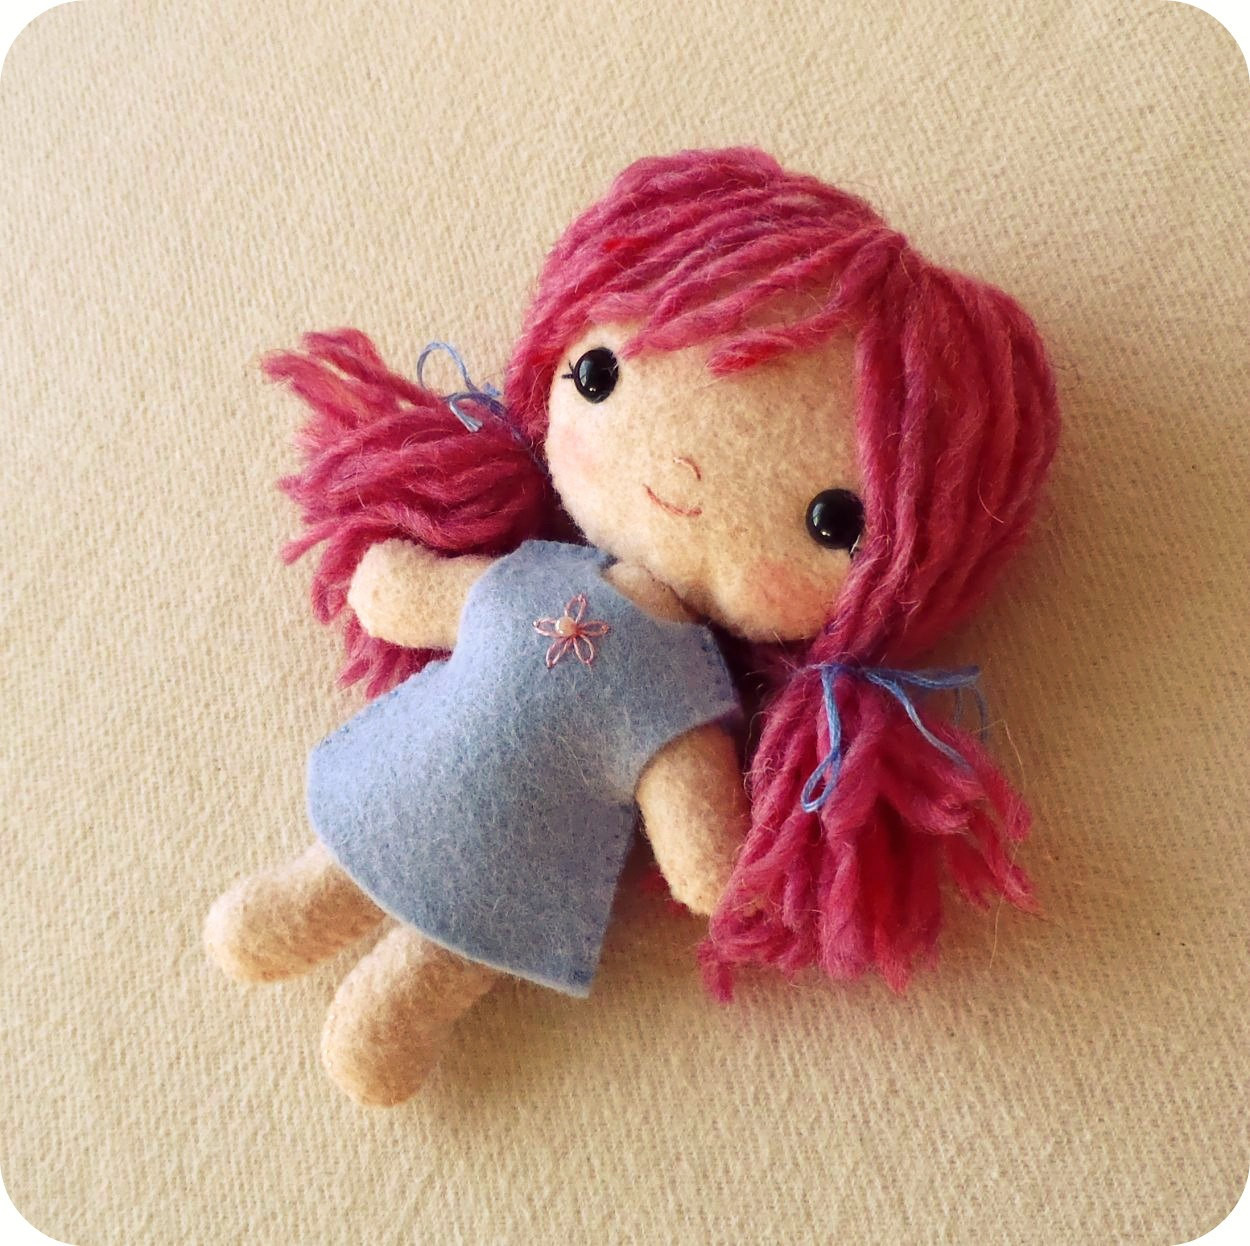 Doll Patterns Inspirational Doll Pdf Pattern Doll Pattern Plush Doll Easy Pattern Of Doll Patterns Fresh Spirit Dolls